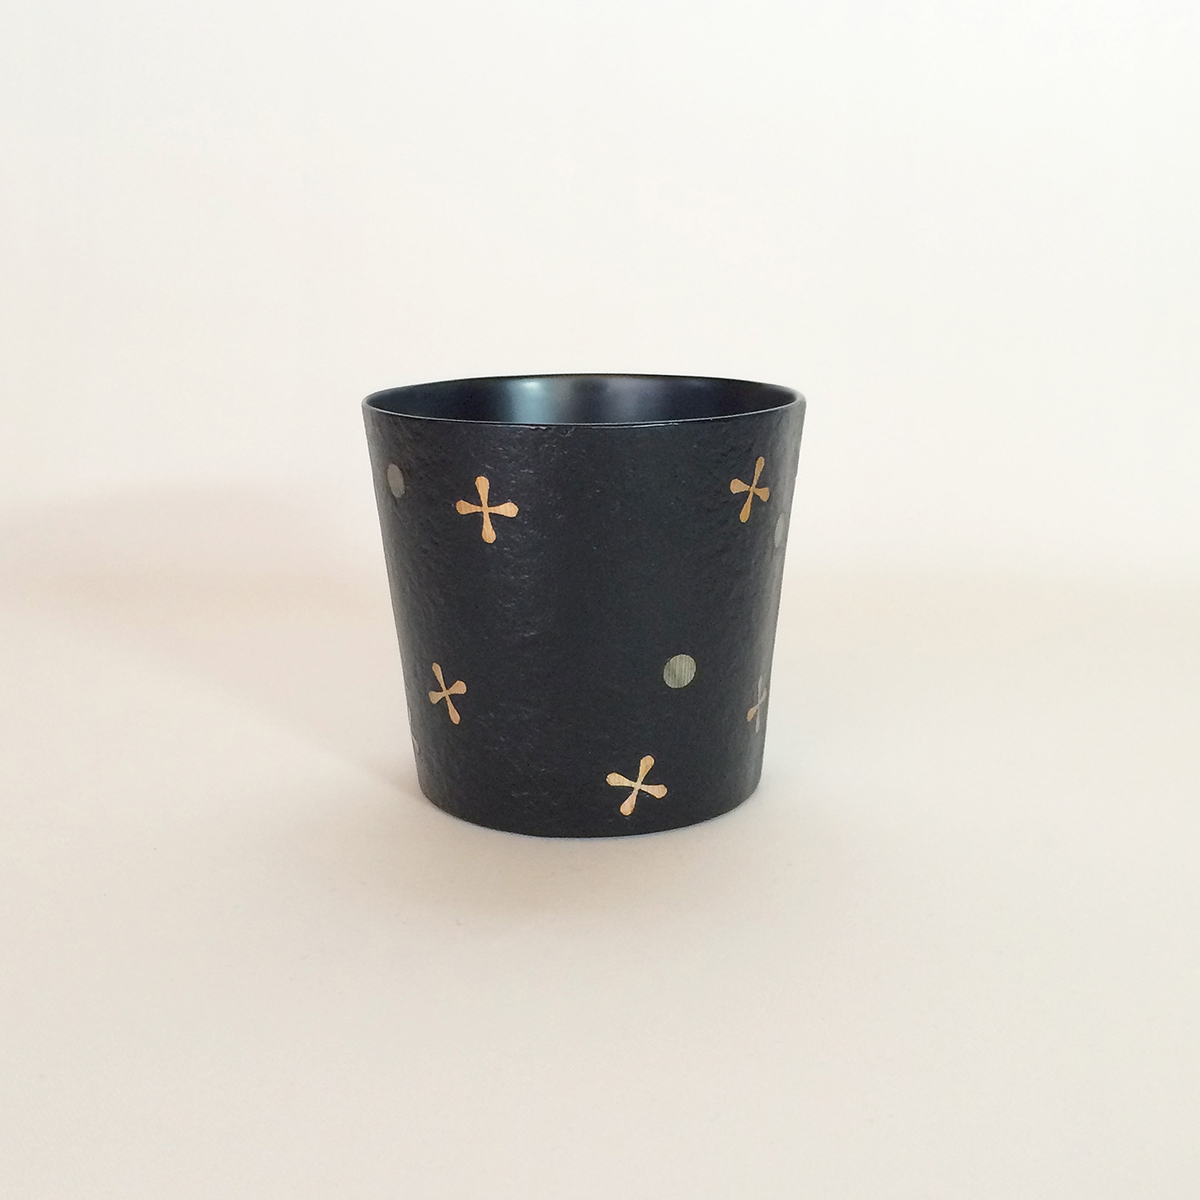 《CUP-×○》2015年